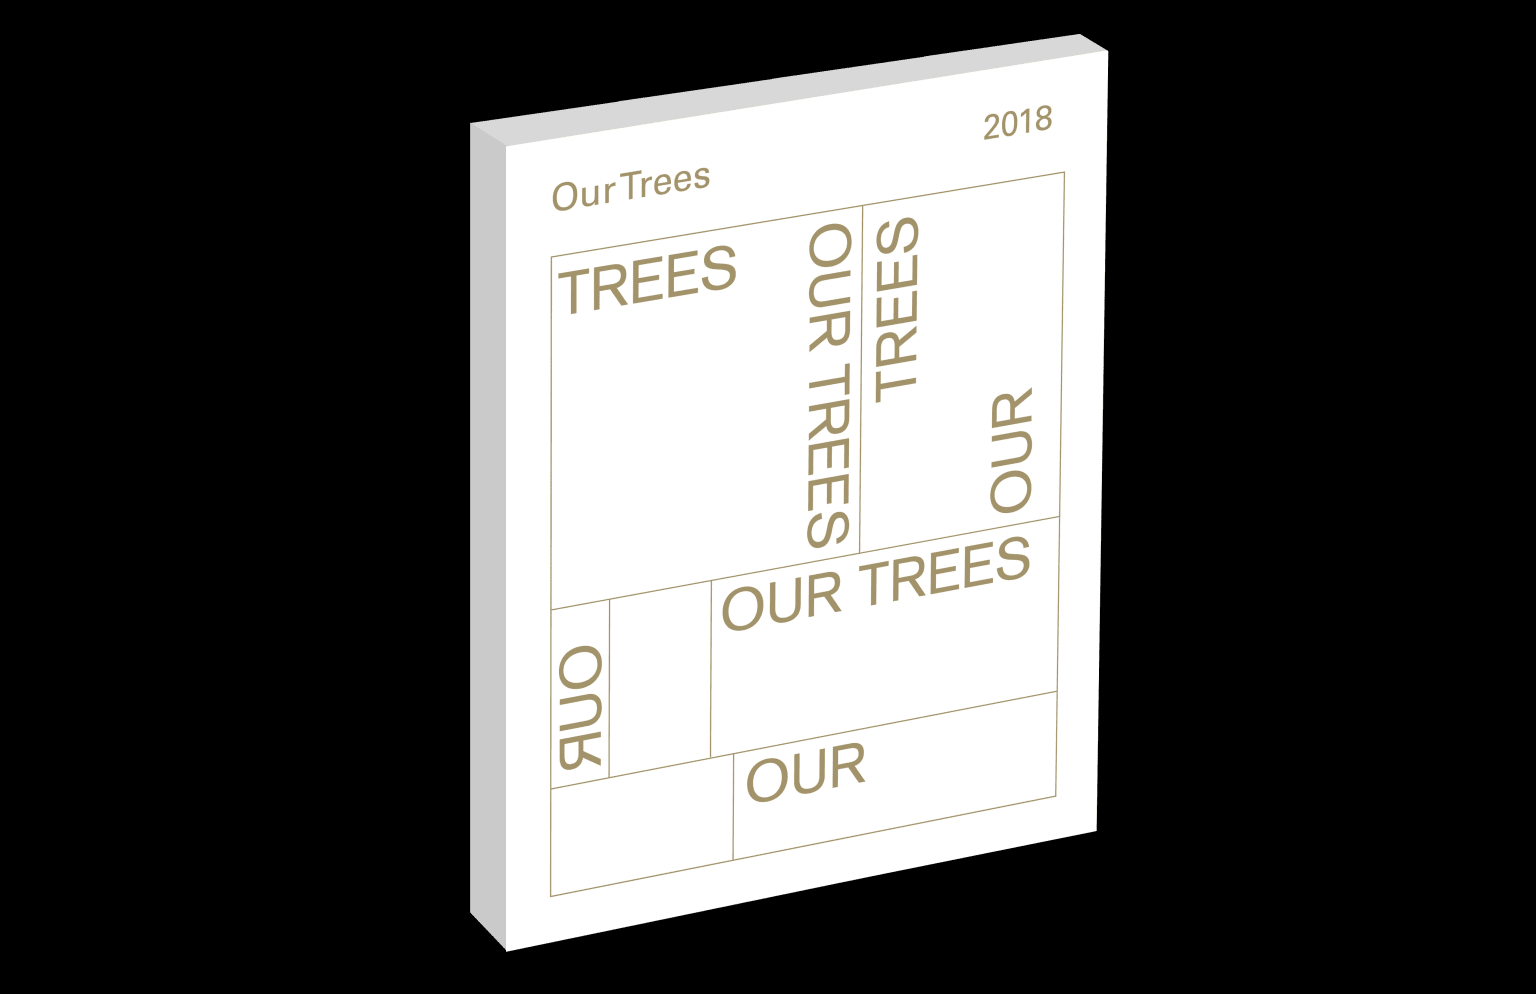 Our Trees